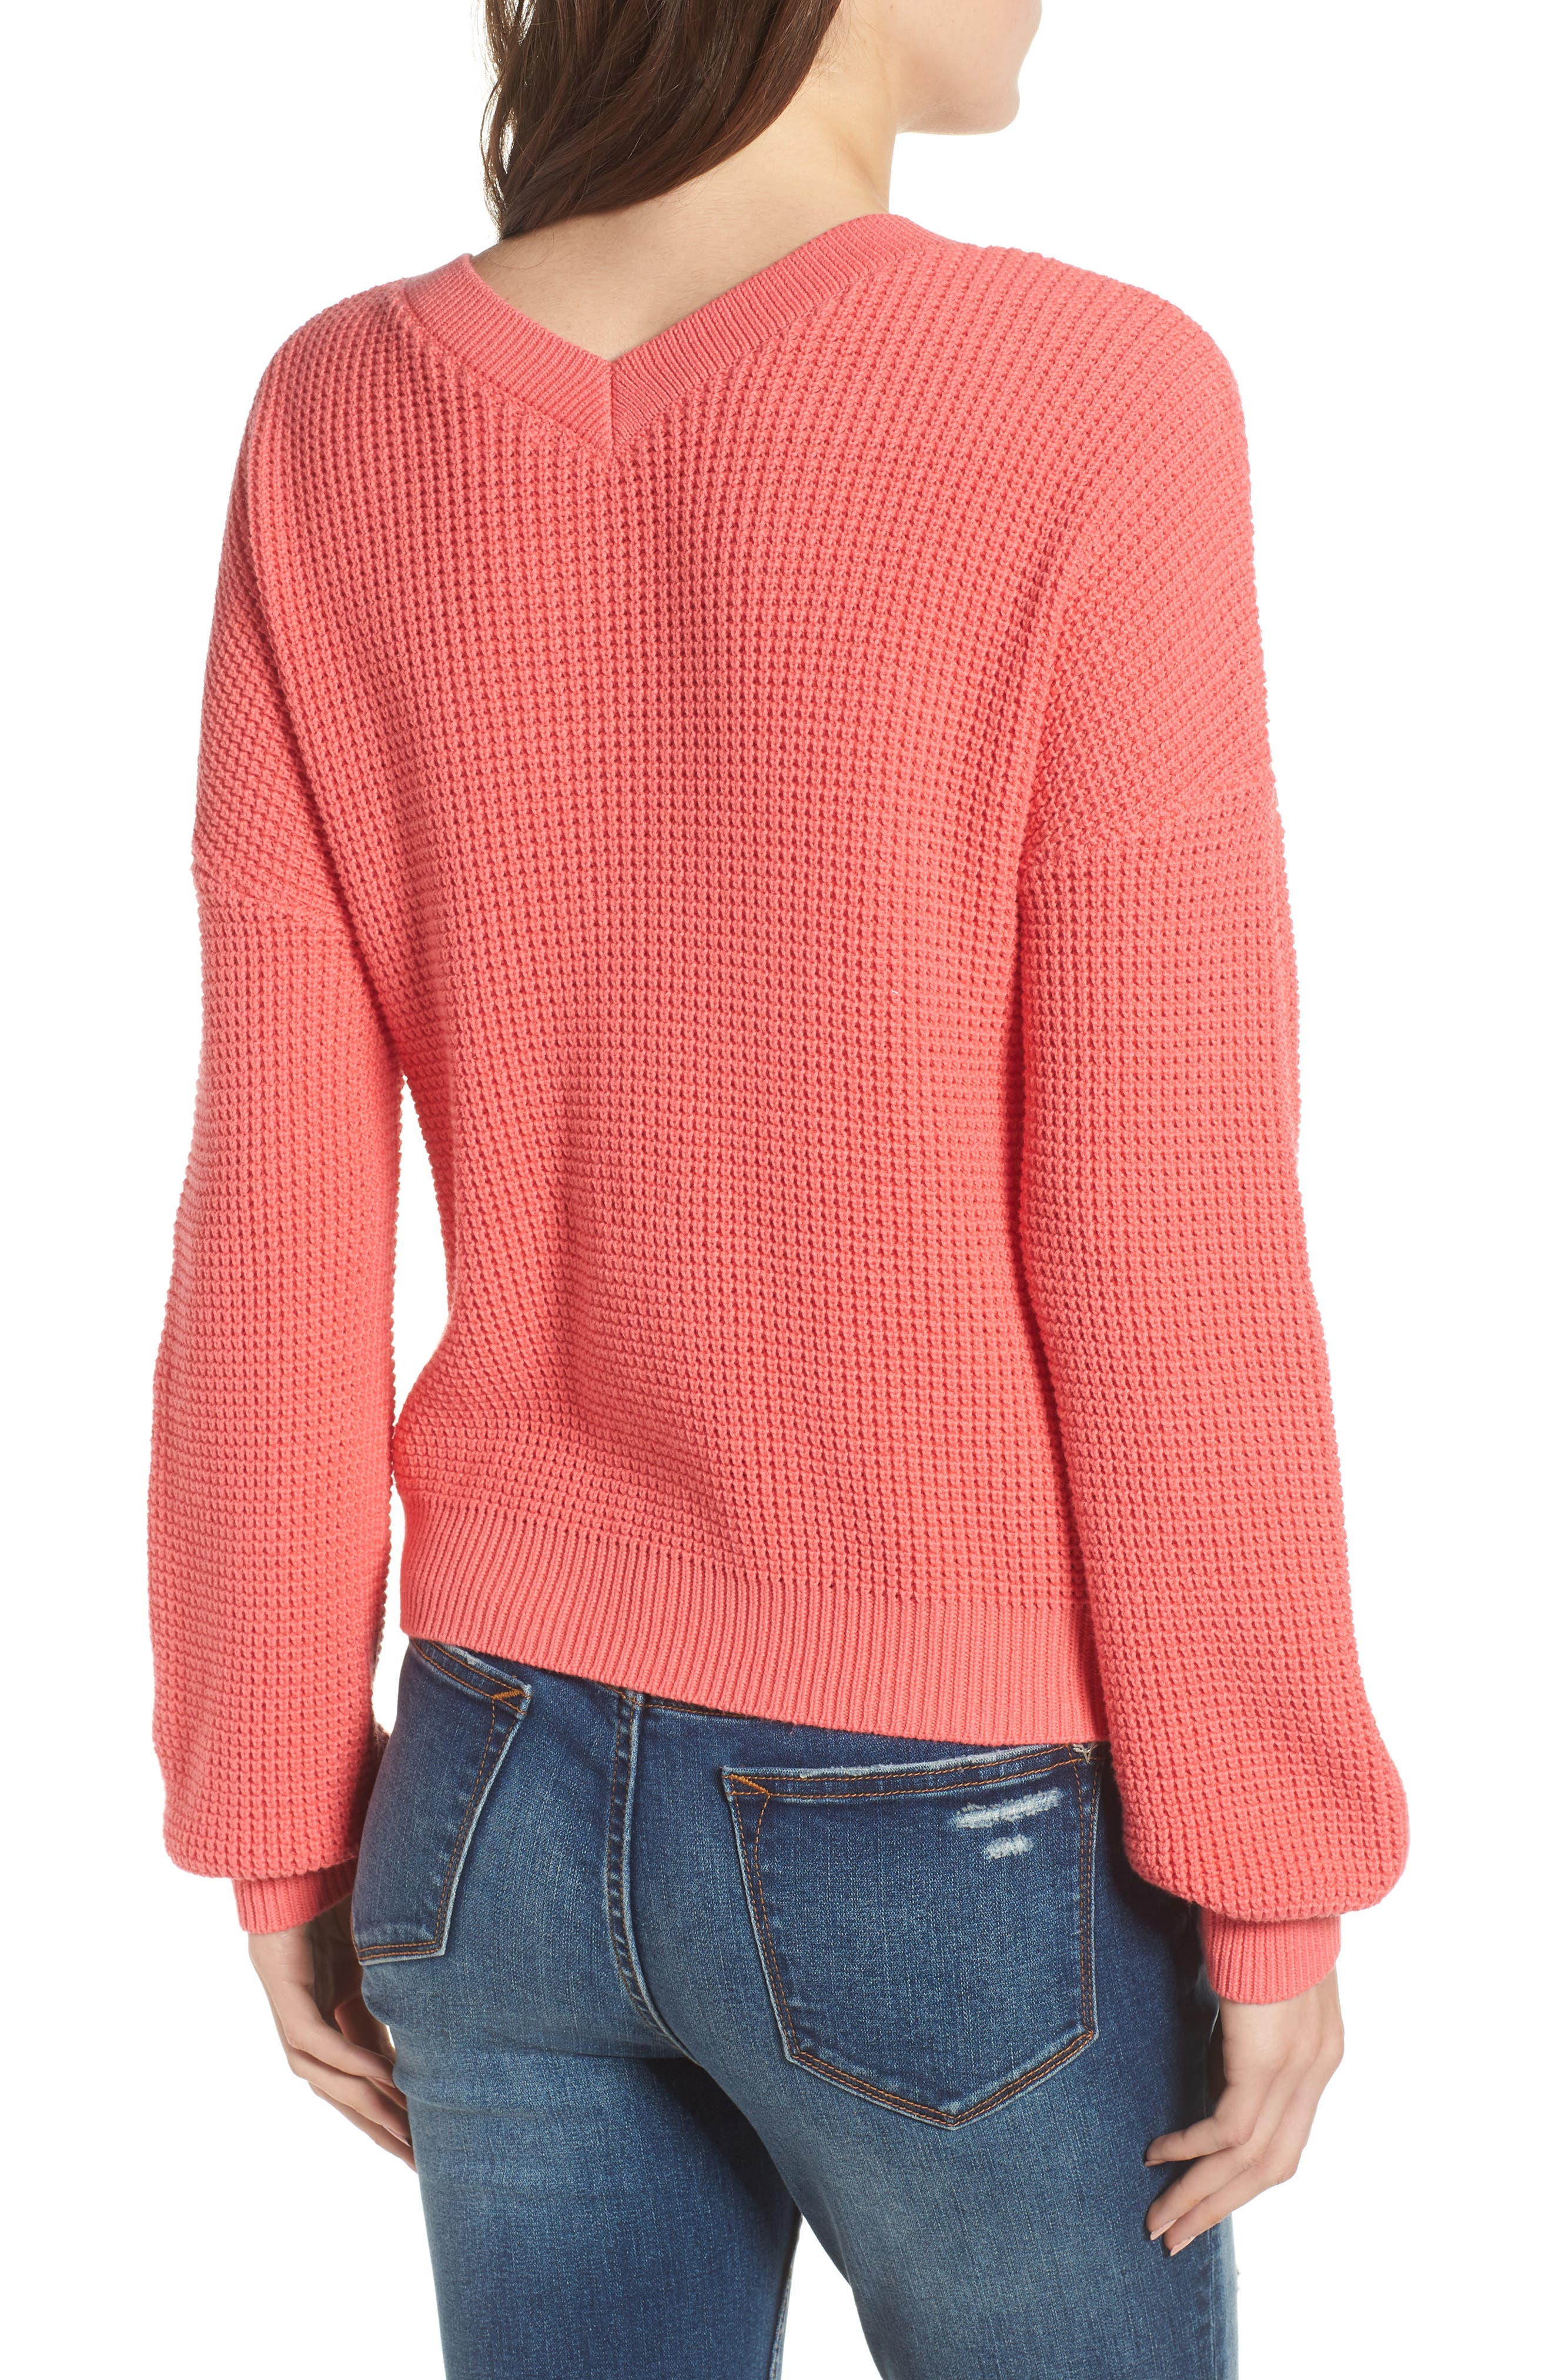 Twist Front Sweater,                             Alternate thumbnail 2, color,                             Coral Sunkist